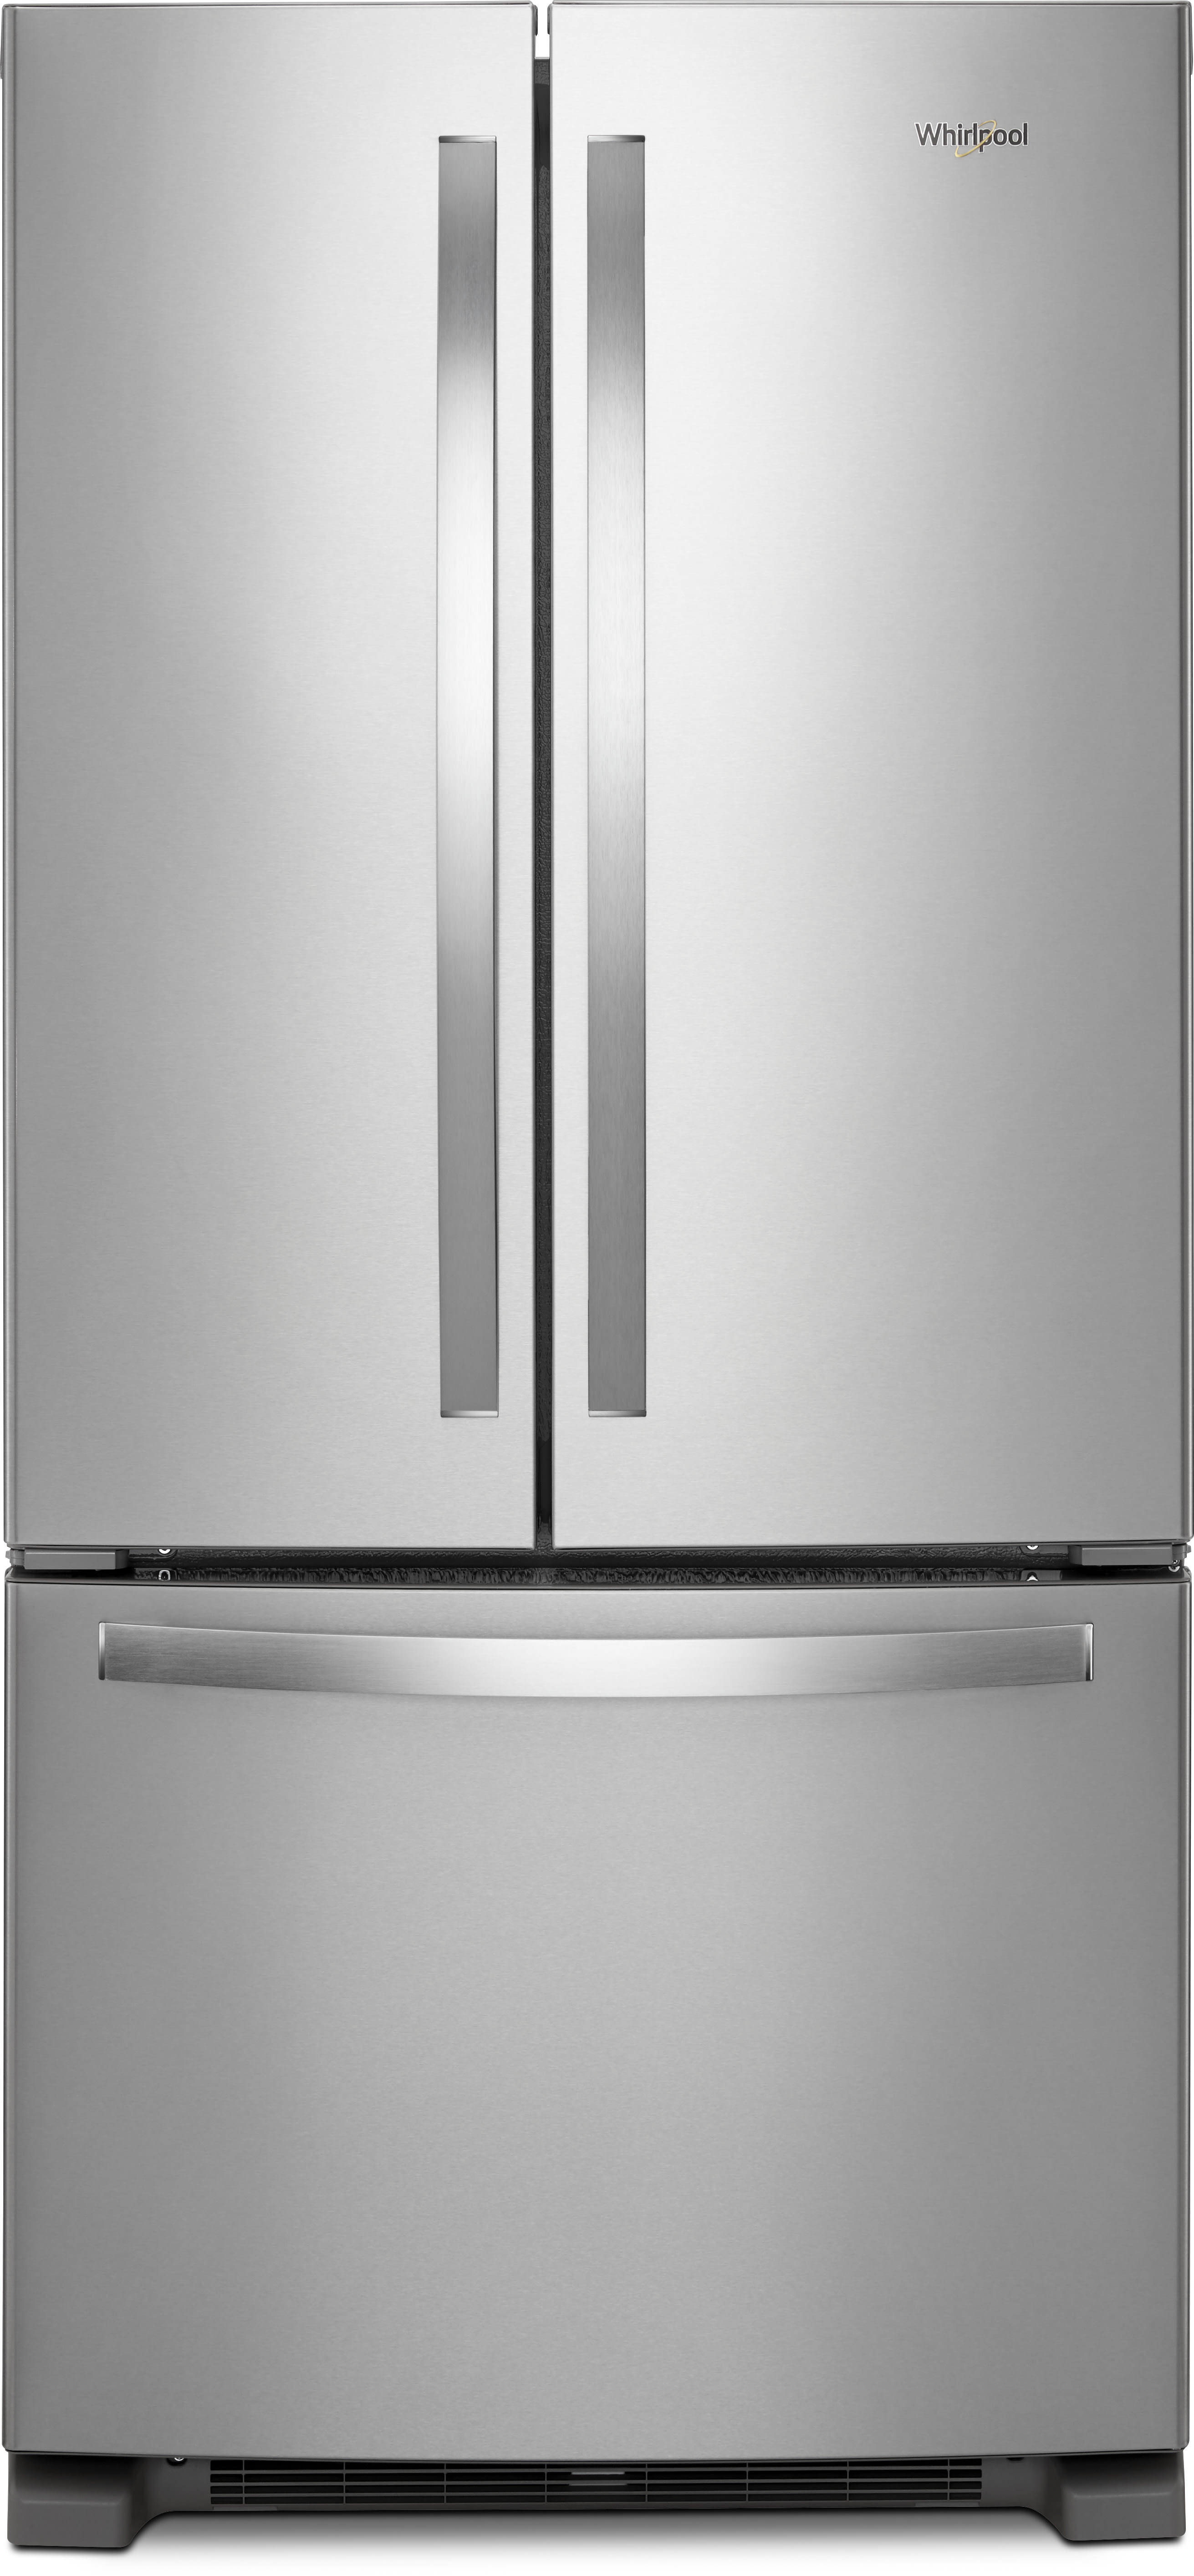 whirlpool wrf532smhz 33 inch french door refrigerator with accu